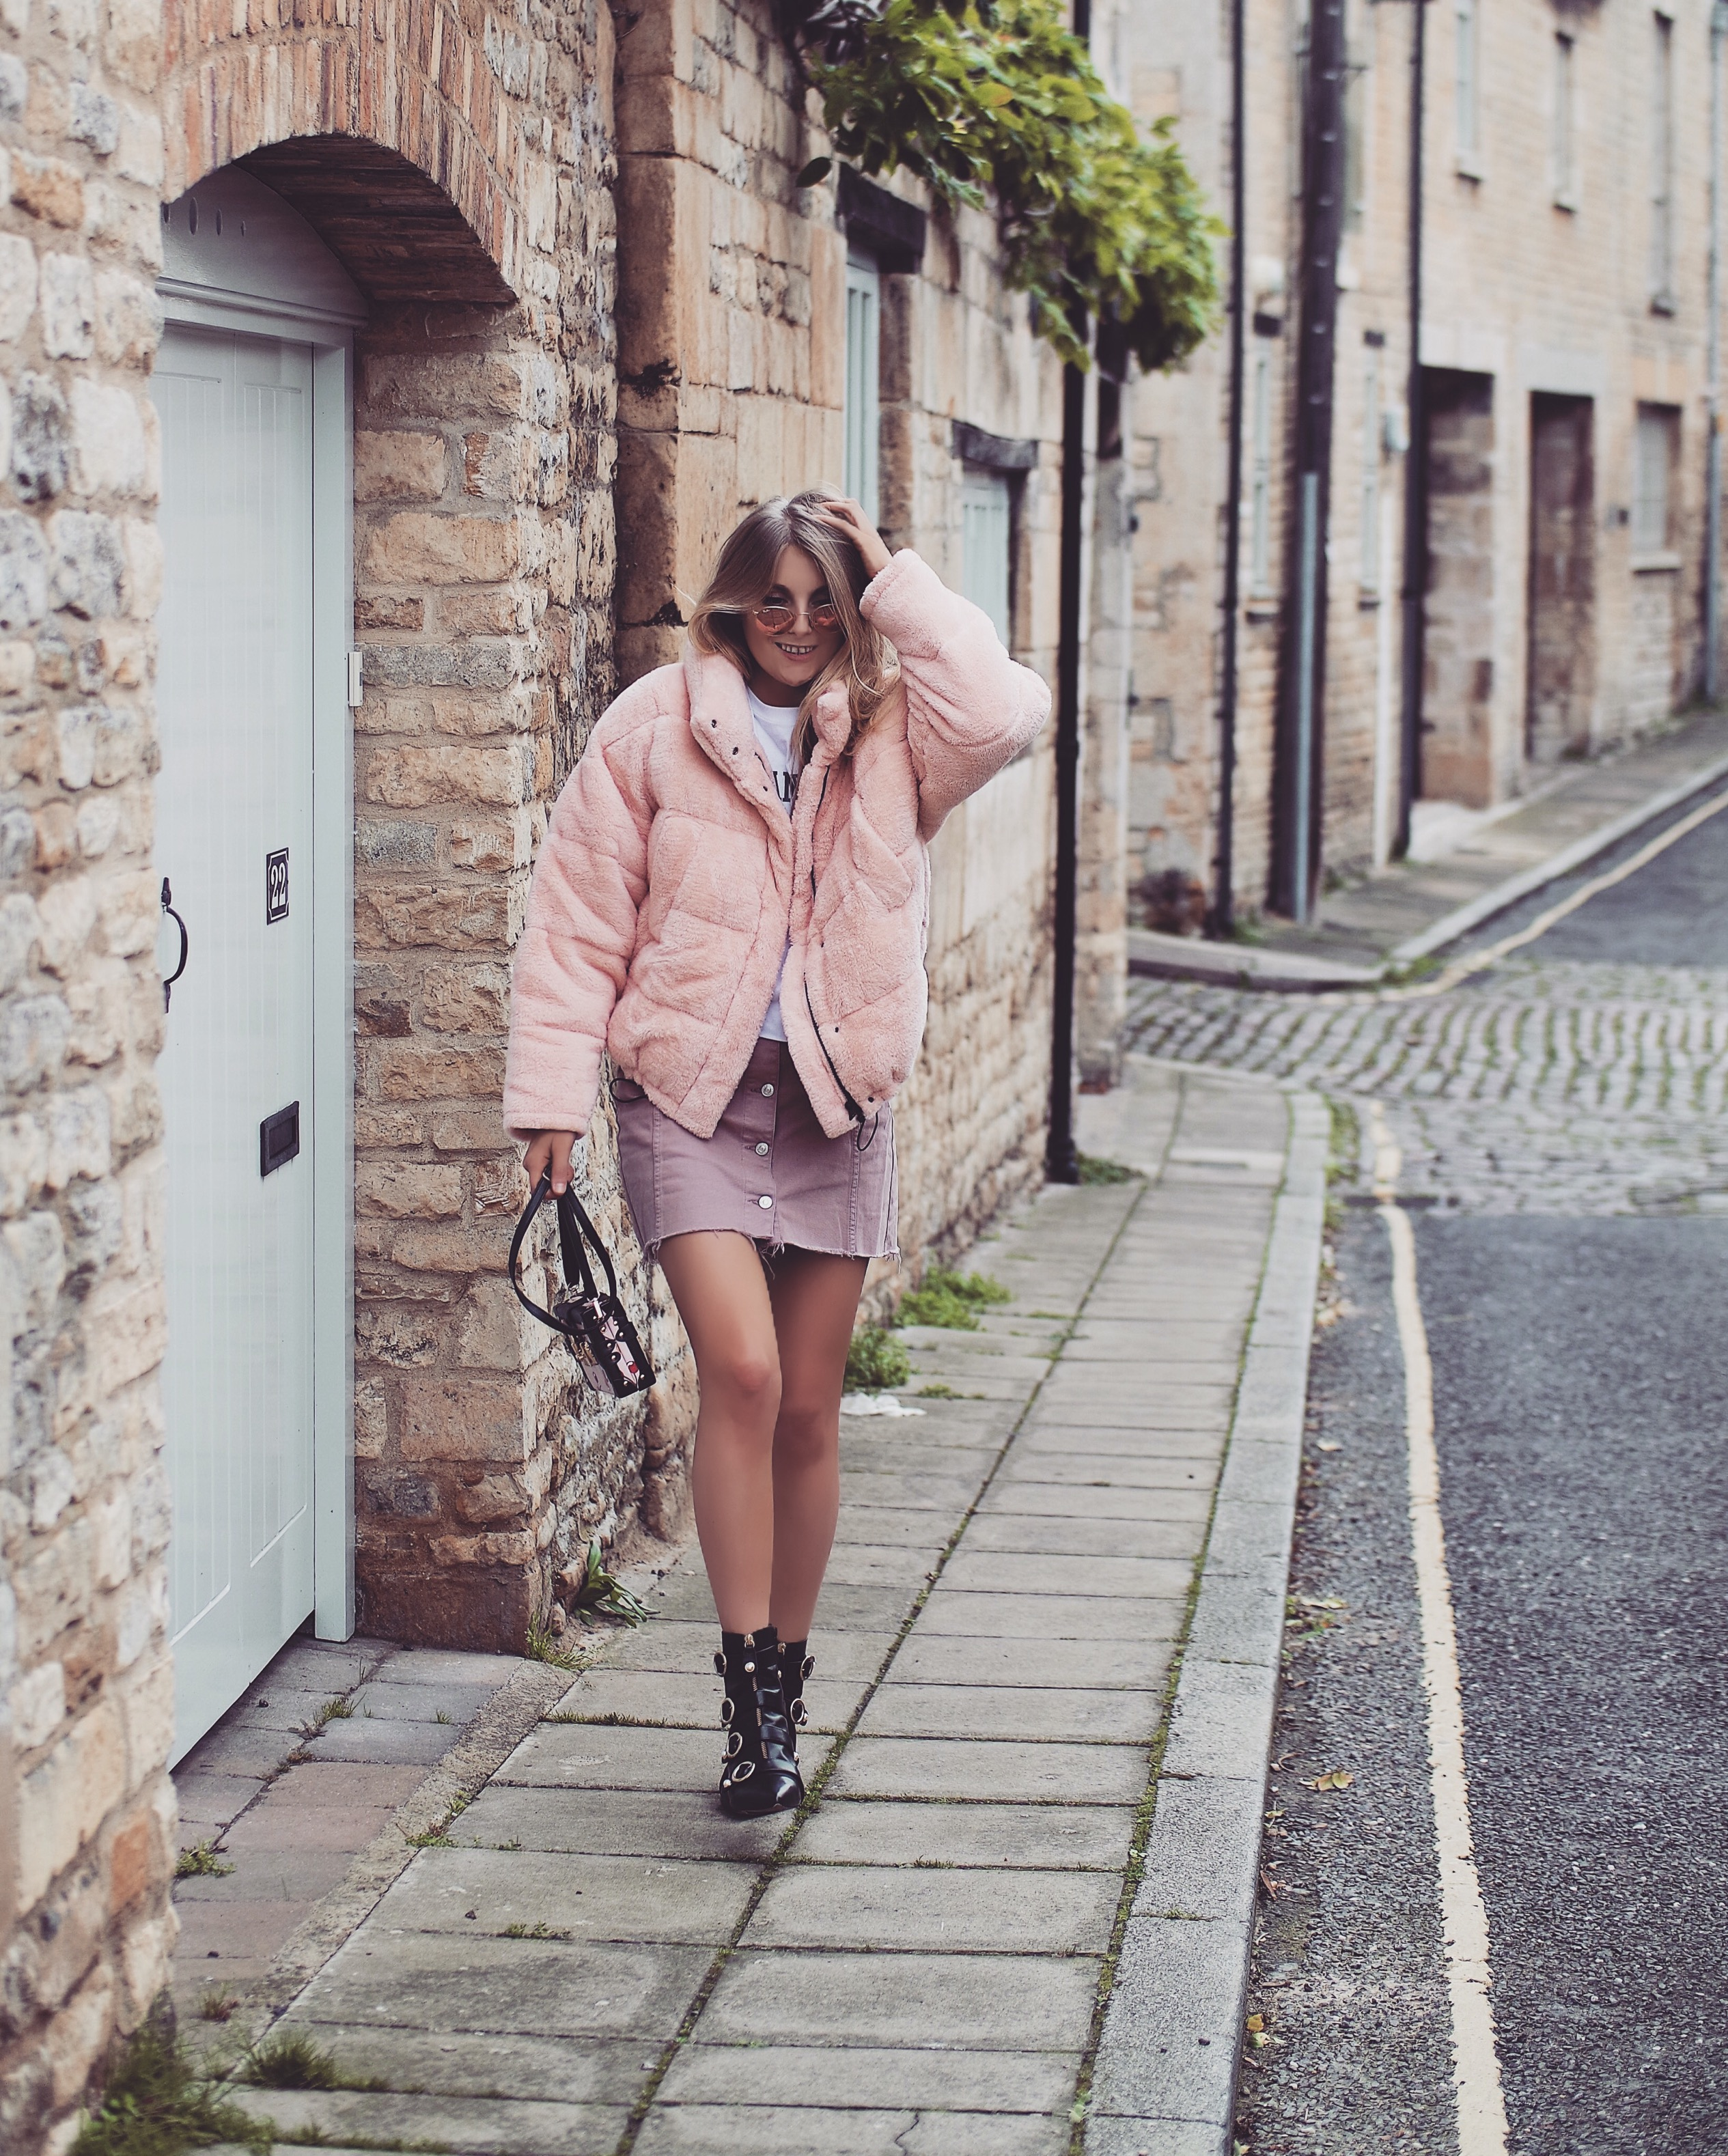 Teddy Puffa Jacket Urban Outfitters Love Style Mindfulness Fashion Personal Style Blog